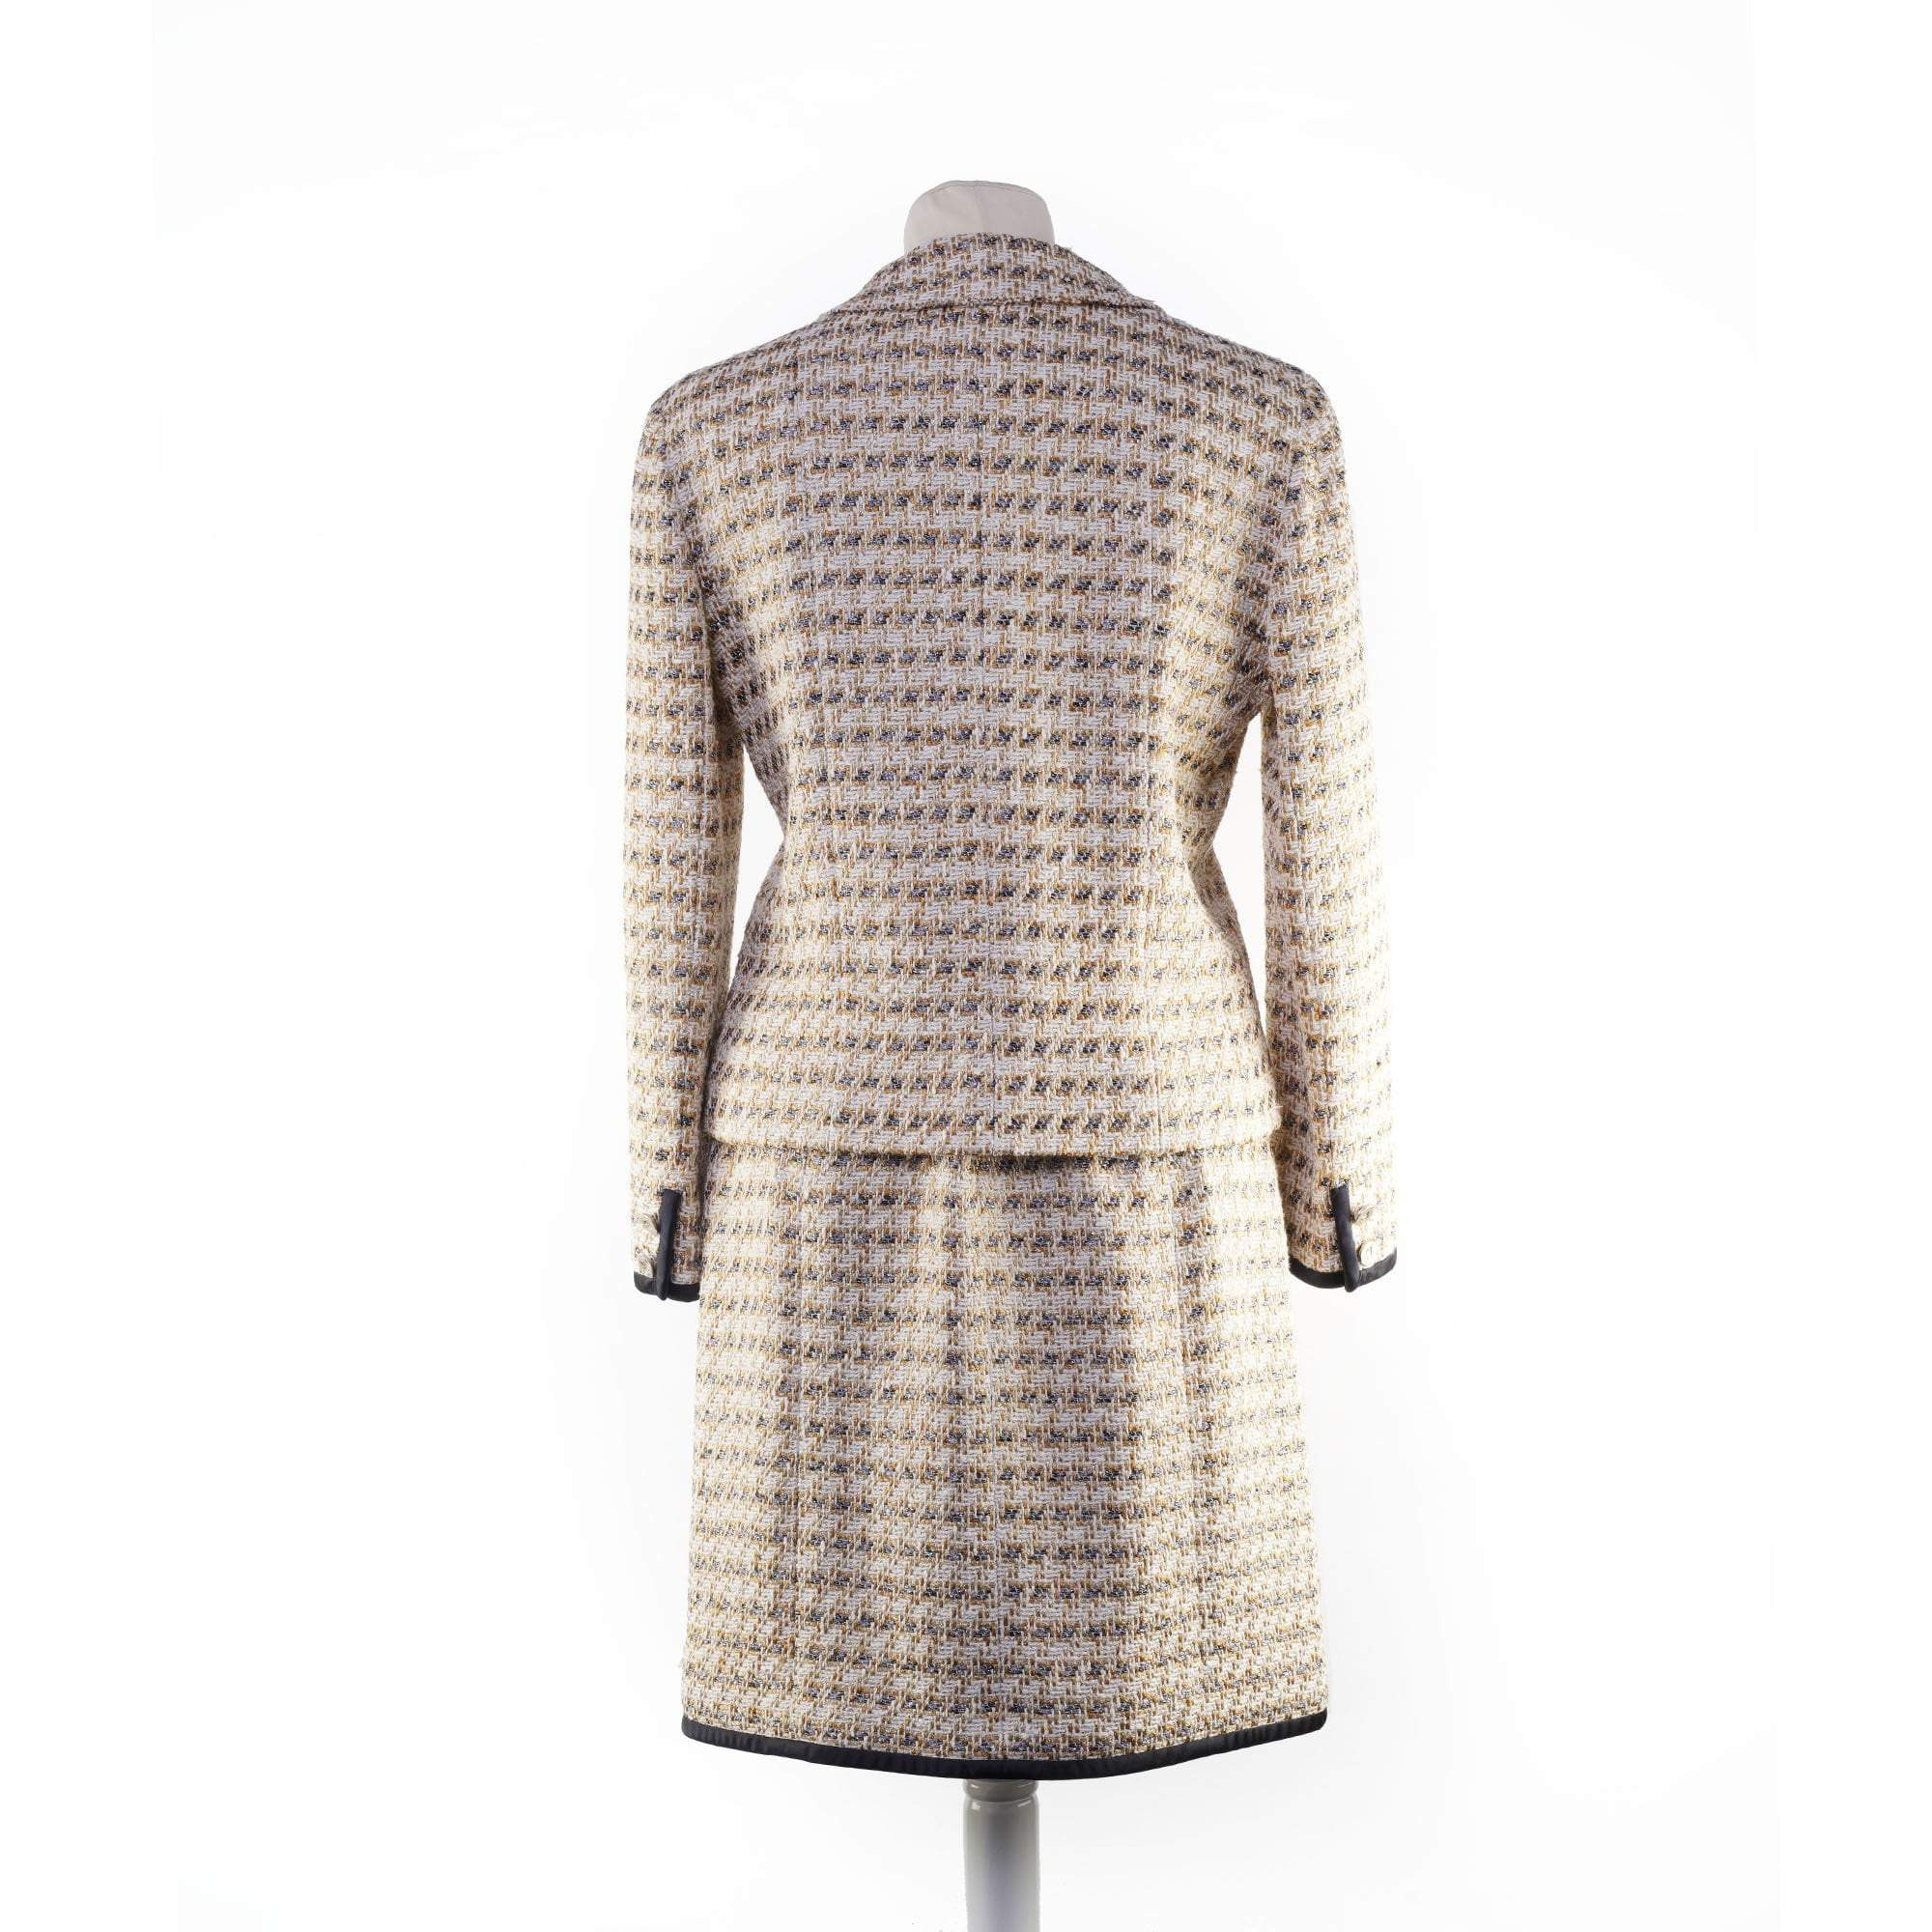 Chanel Beige and Gold Tweed Skirt (Skirt only)